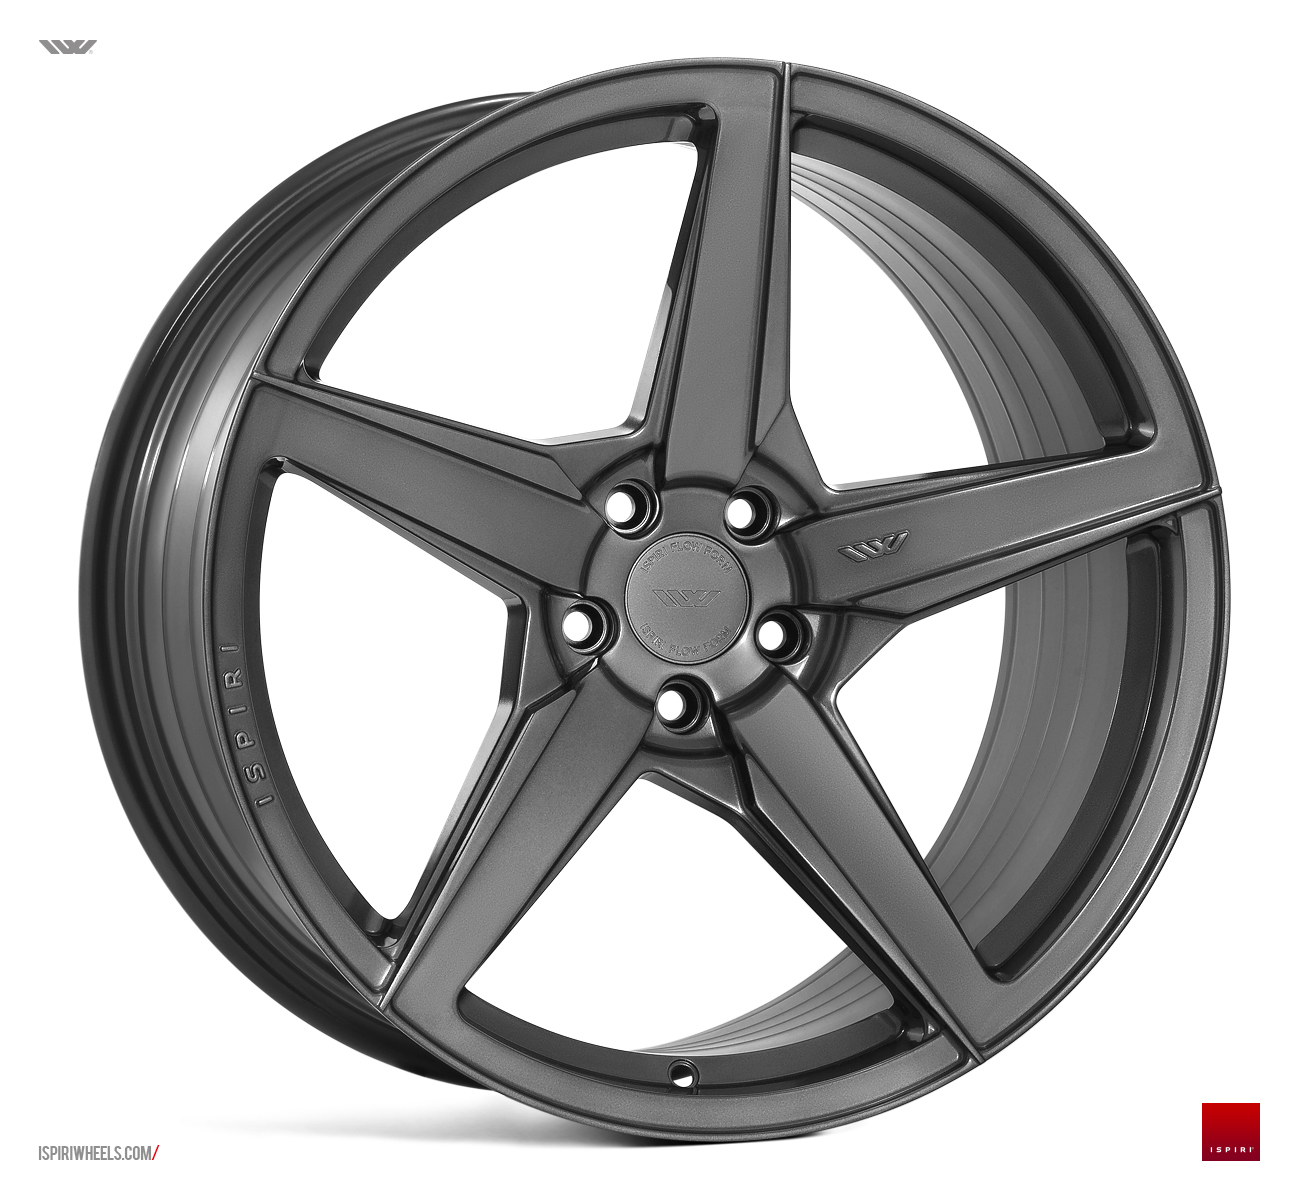 "NEW 20"" ISPIRI FFR5 5 SPOKE ALLOY WHEELS IN CARBON GRAPHITE, VARIOUS FITMENTS AVAILABLE 5x120"